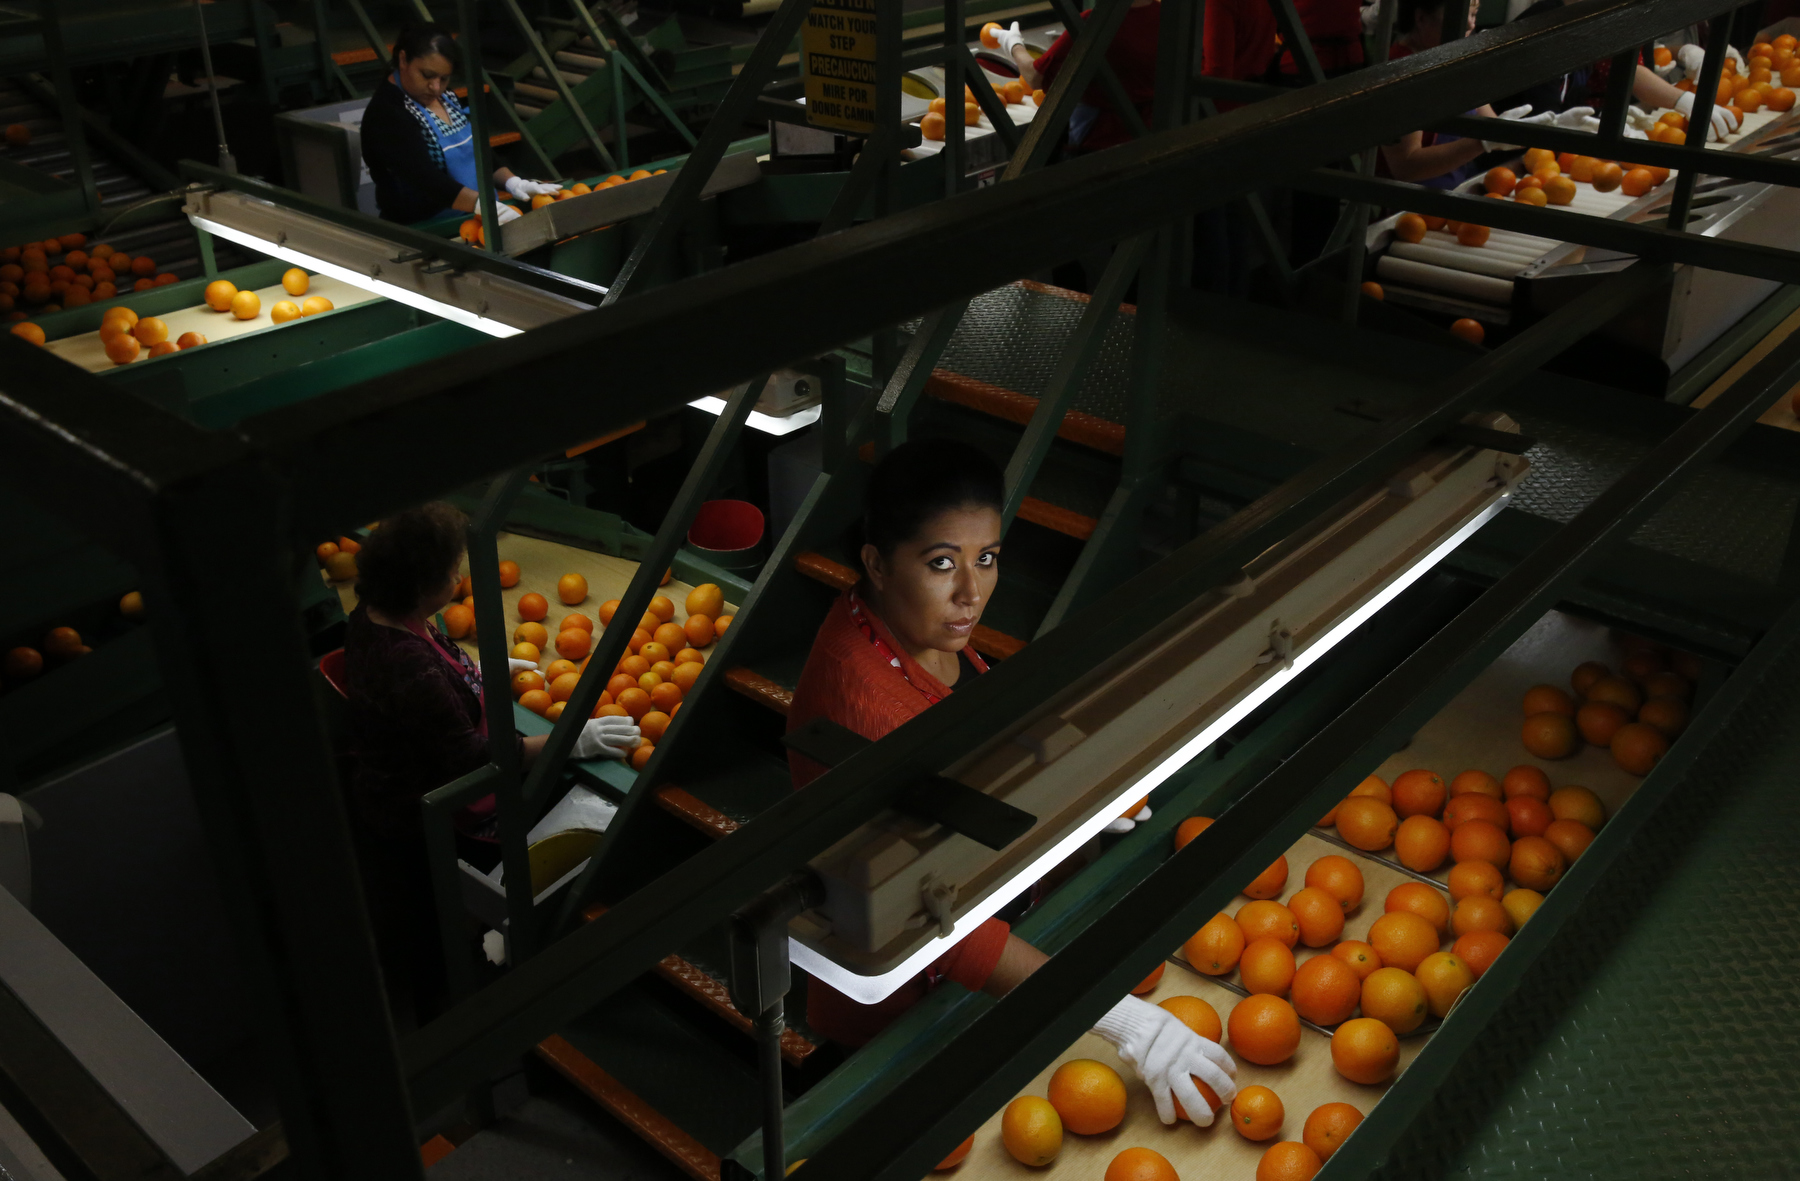 Erica Chavez sorts oranges in the Sun Pacific Farming and Shippers packing facility Feb. 14, 2015 in Exeter, Calif. As California enters into the fourth year of drought and farmers lose orchards and fallow fields, migrant worker jobs are becoming more scarce.